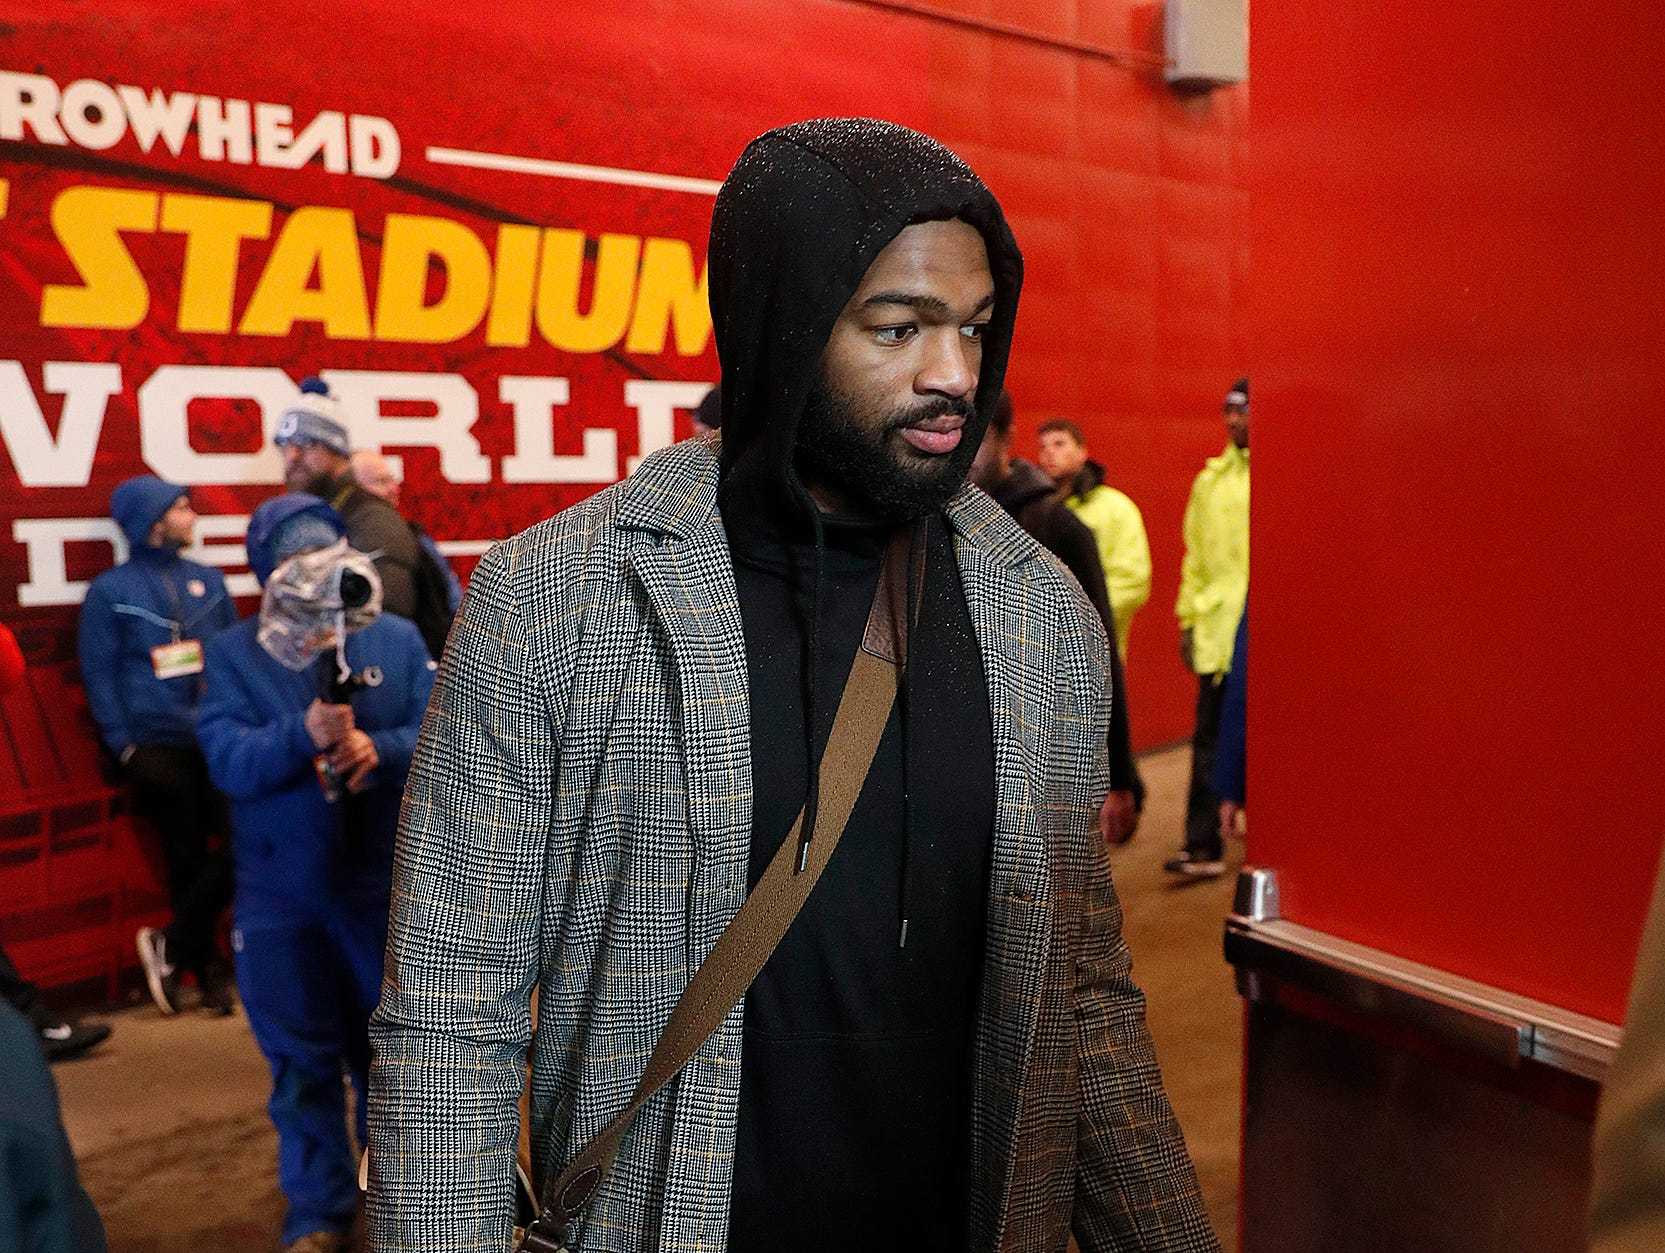 Indianapolis Colts quarterback Jacoby Brissett (7) and the Indianapolis Colts arrive for their game against the Kansas City Chiefs at Arrowhead Stadium in Kansas City, MO., on Saturday, Jan. 12, 2019.